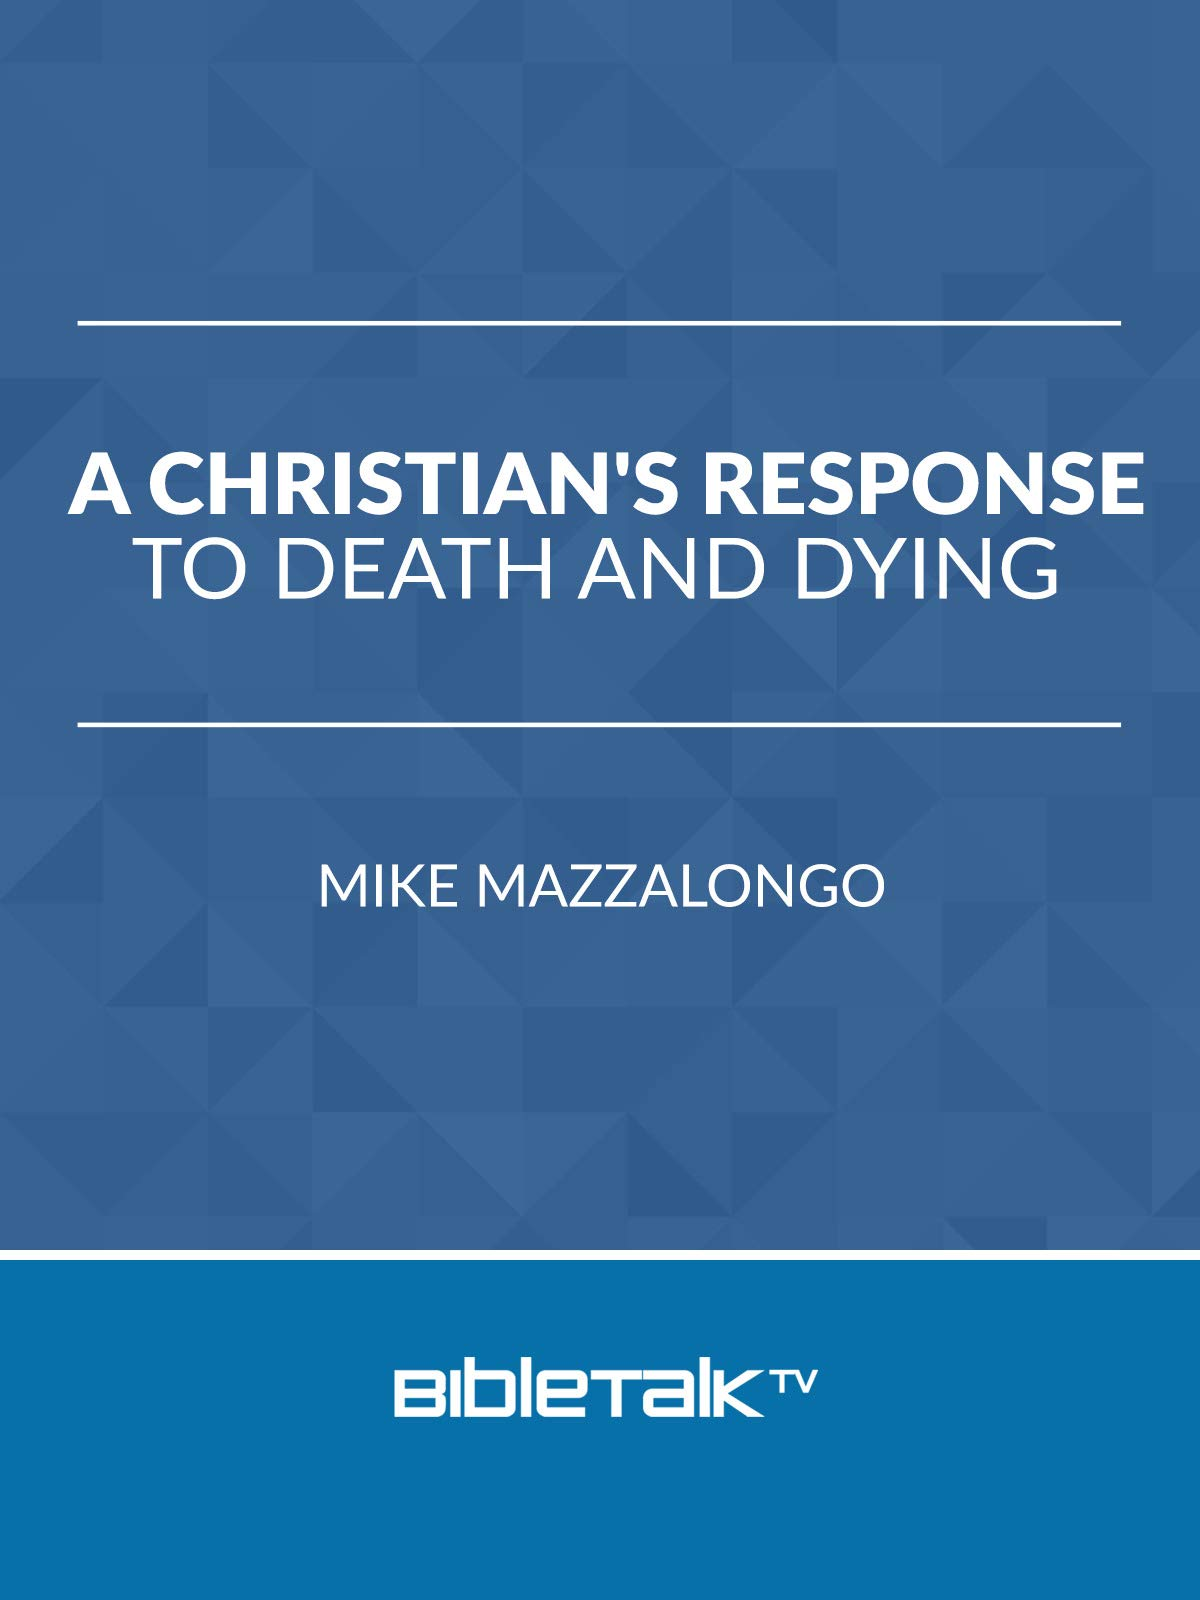 A Christian's Response to Death and Dying